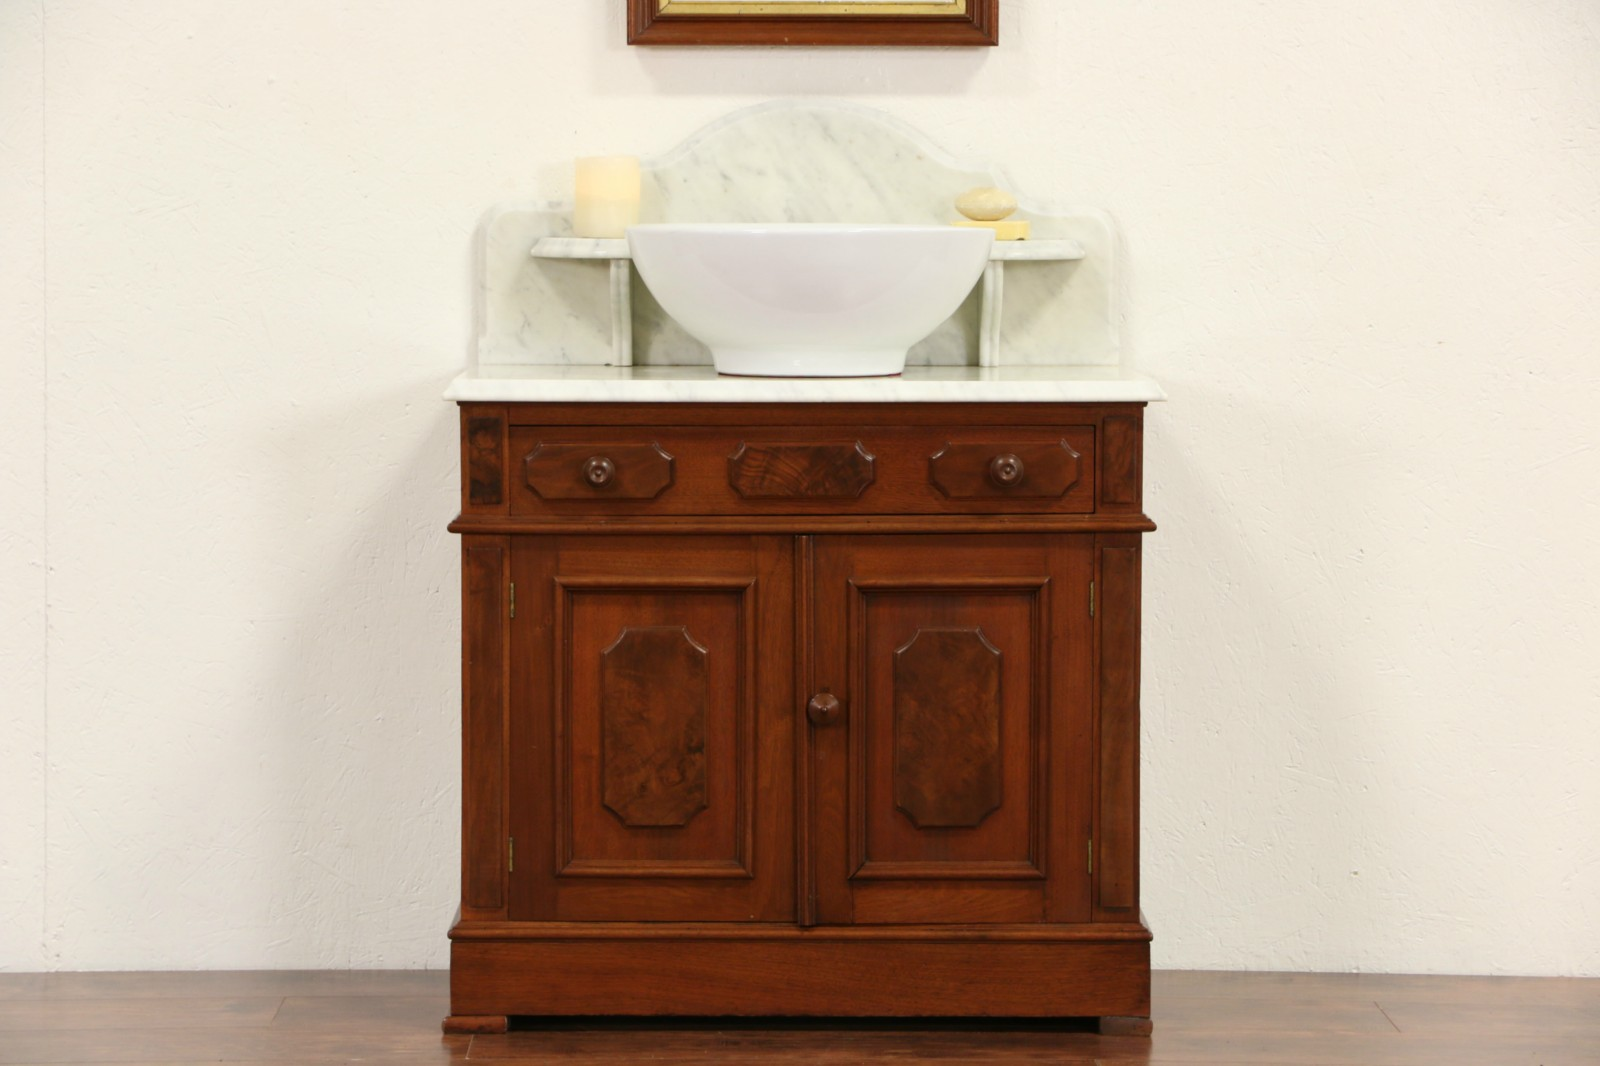 Picture of: Sold Victorian 1870 S Antique Marble Top Washstand Bar Sink Vanity Or Small Chest Harp Gallery Antiques Furniture